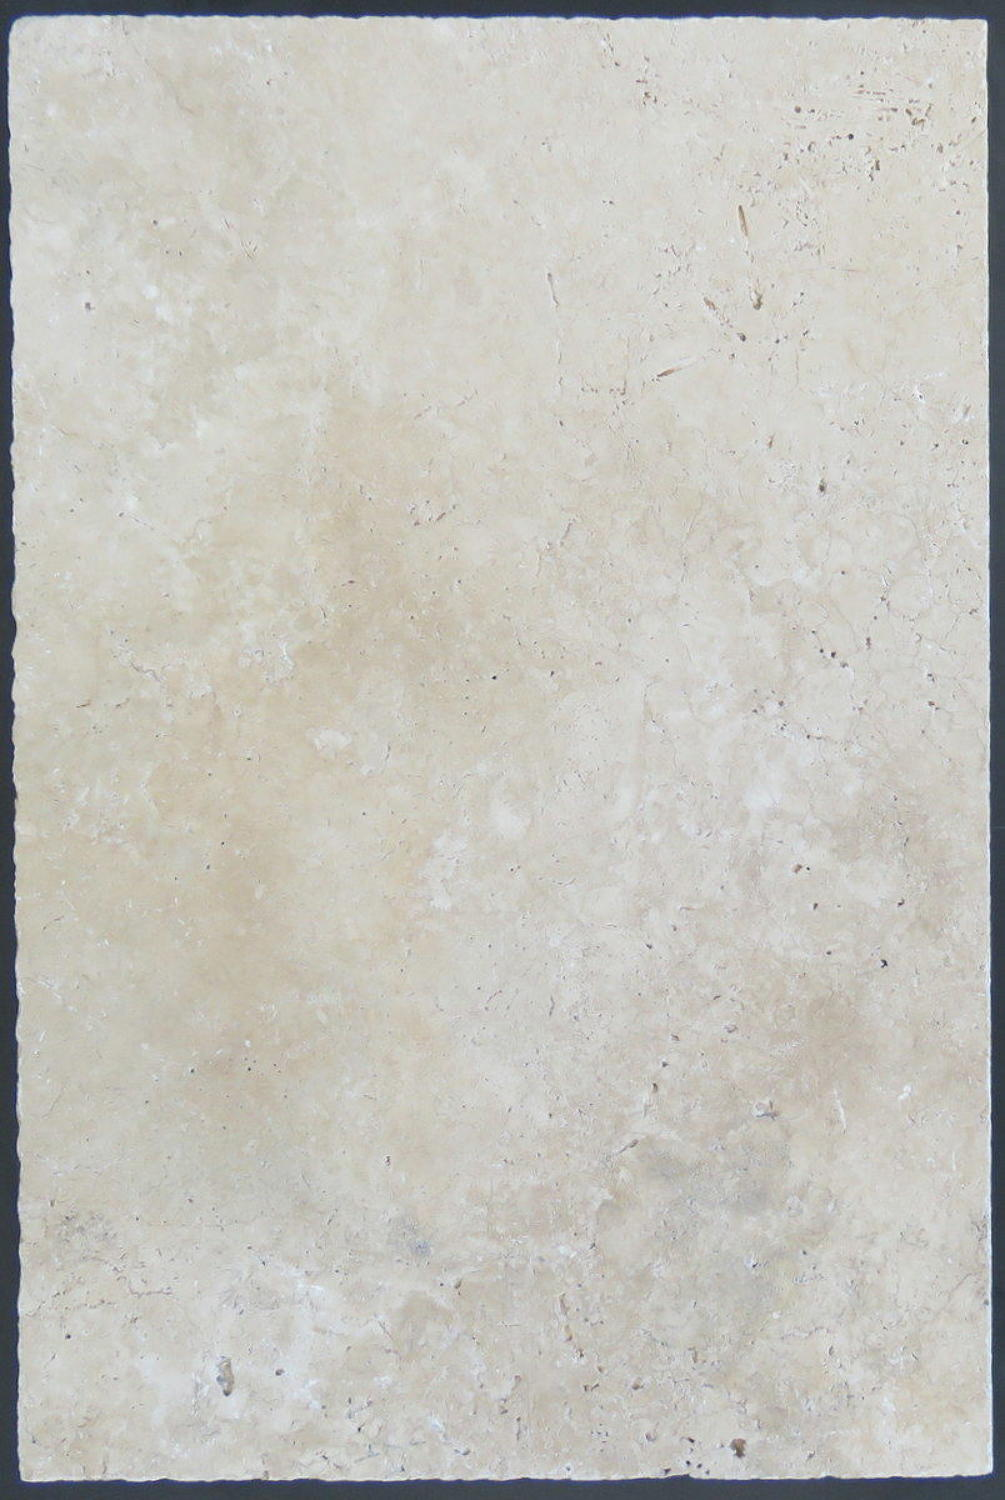 Latte tumbled travertine